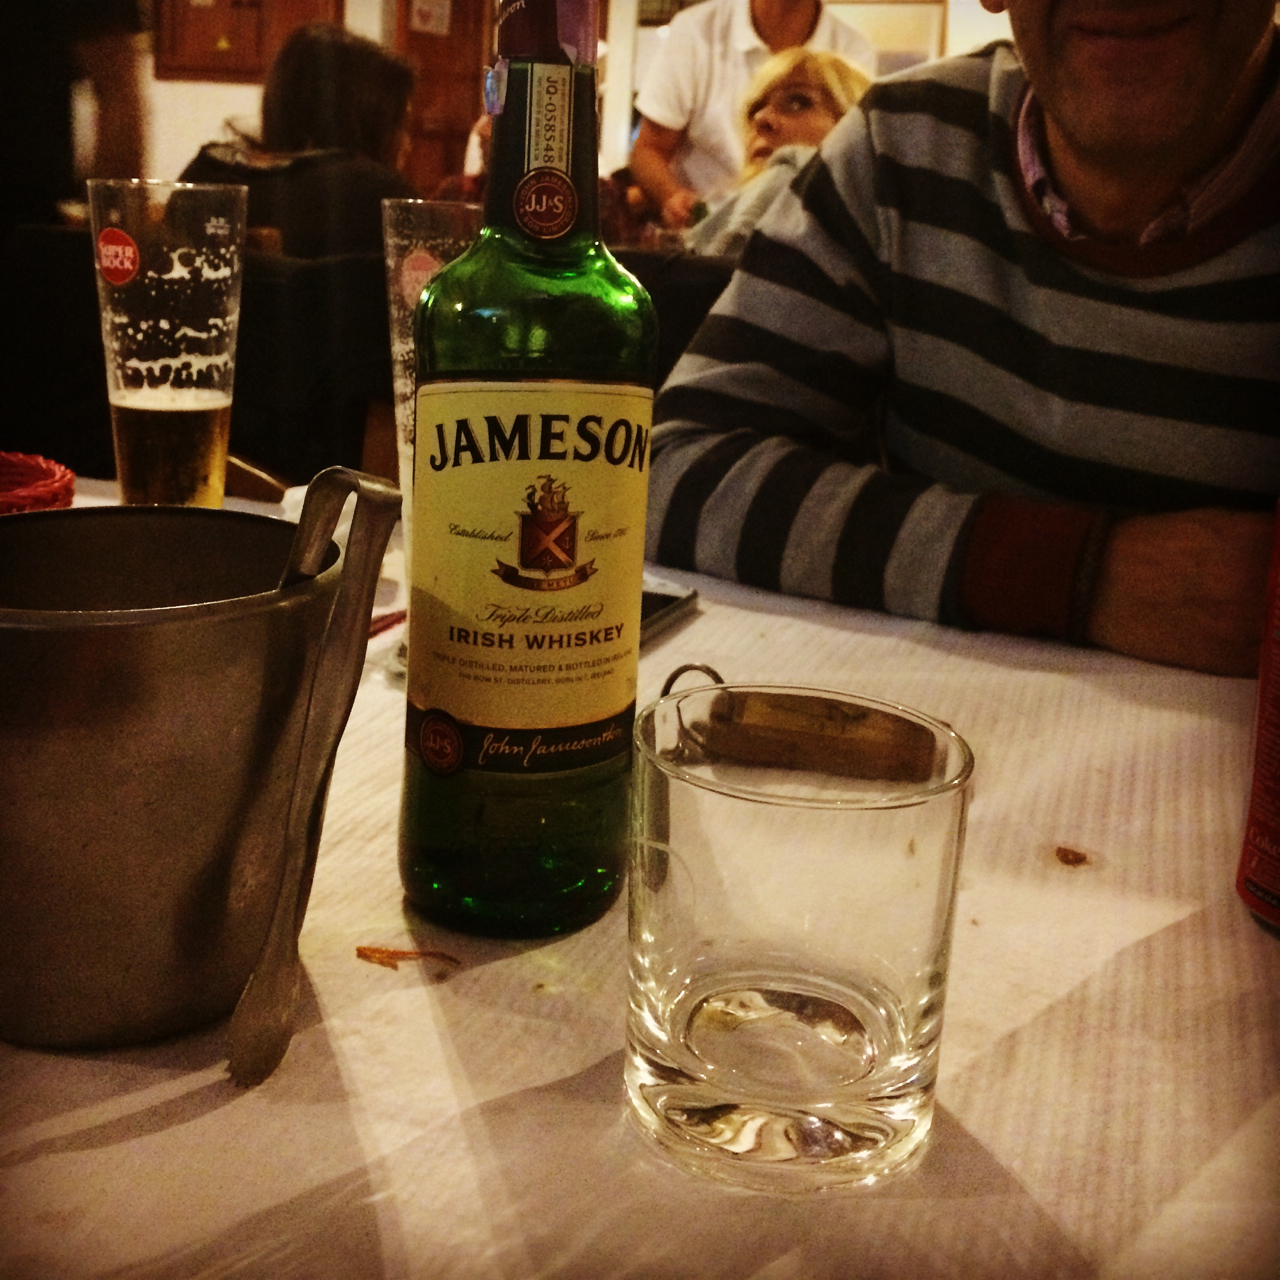 After dinner I asked for a Jameson on the rocks. The restaurant set down the bottle, a glass and the ice bucket. This happened at every restaurant where I ordered a whiskey in Portugal. With great power comes great responsibility.